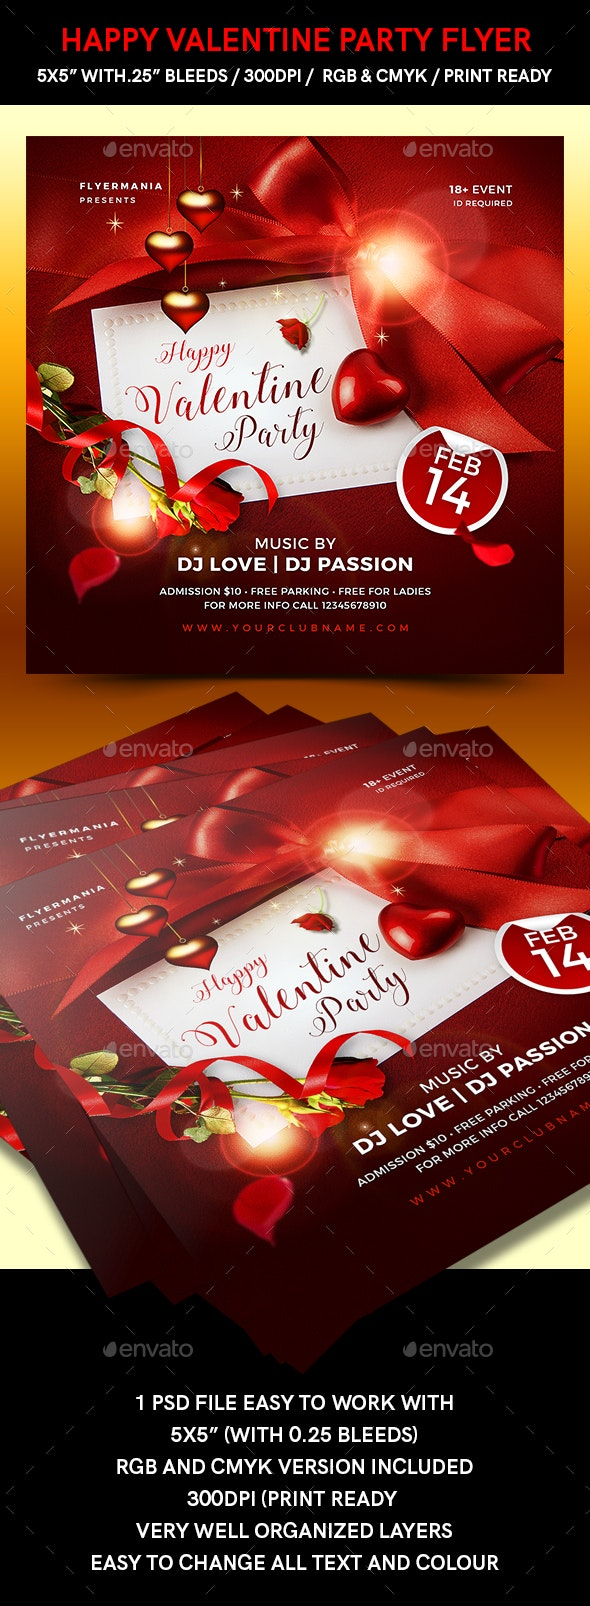 Happy Valentine Party Flyer - Flyers Print Templates